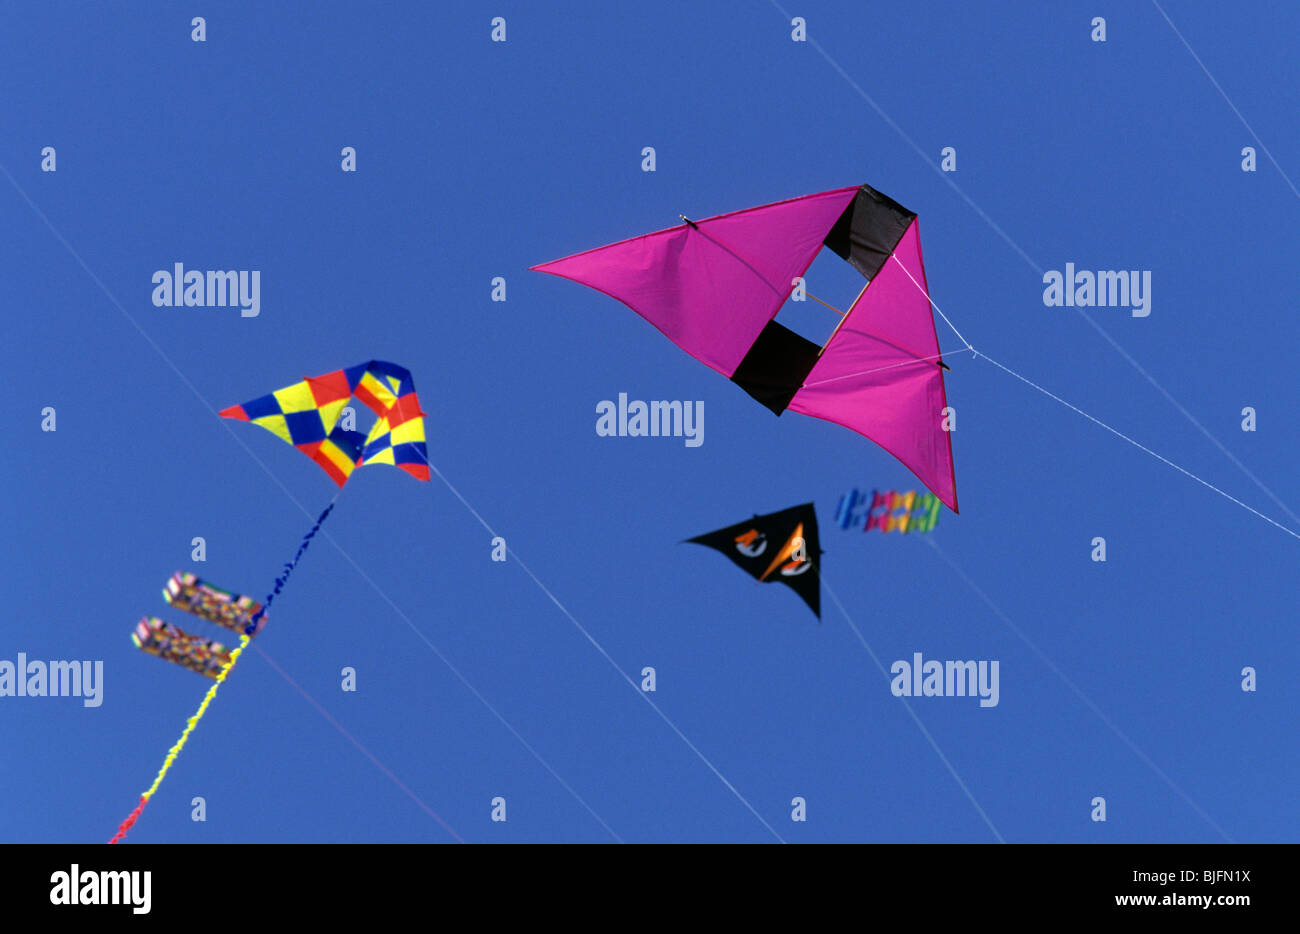 Colourful figure kites flying high in sky - Stock Image